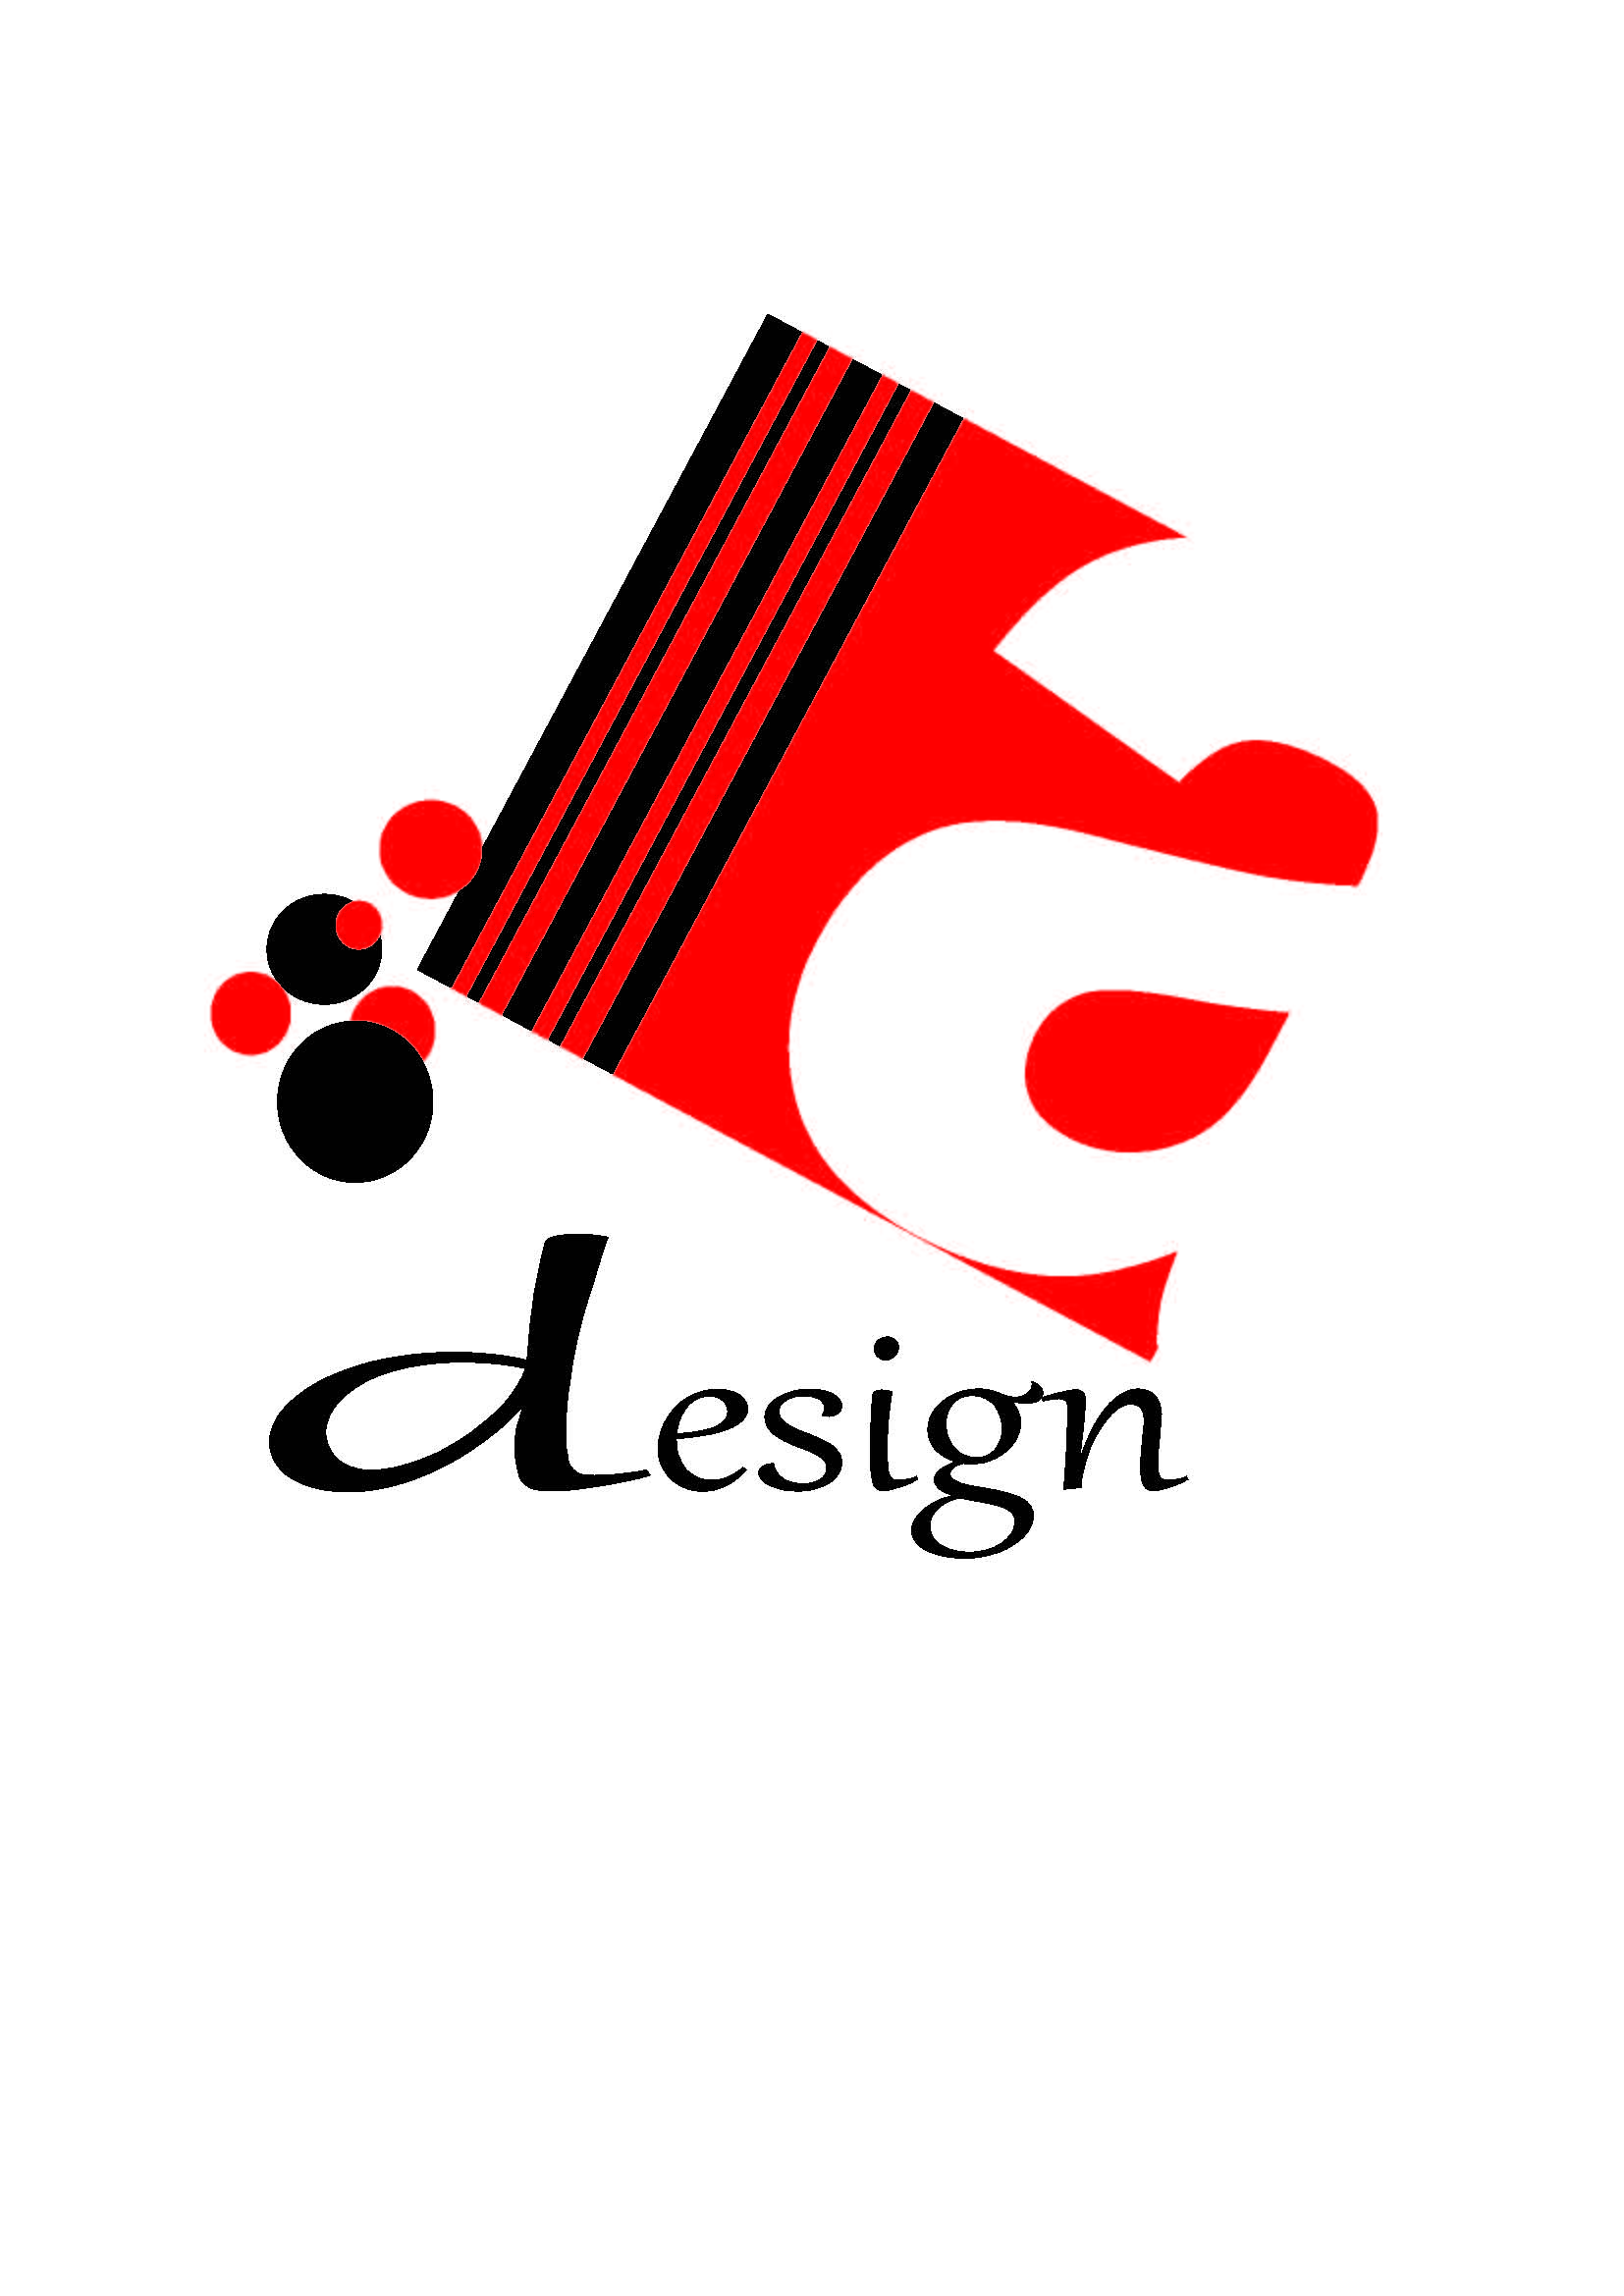 Emejing Graphic Designer Logo Ideas Pictures - Interior Design ...